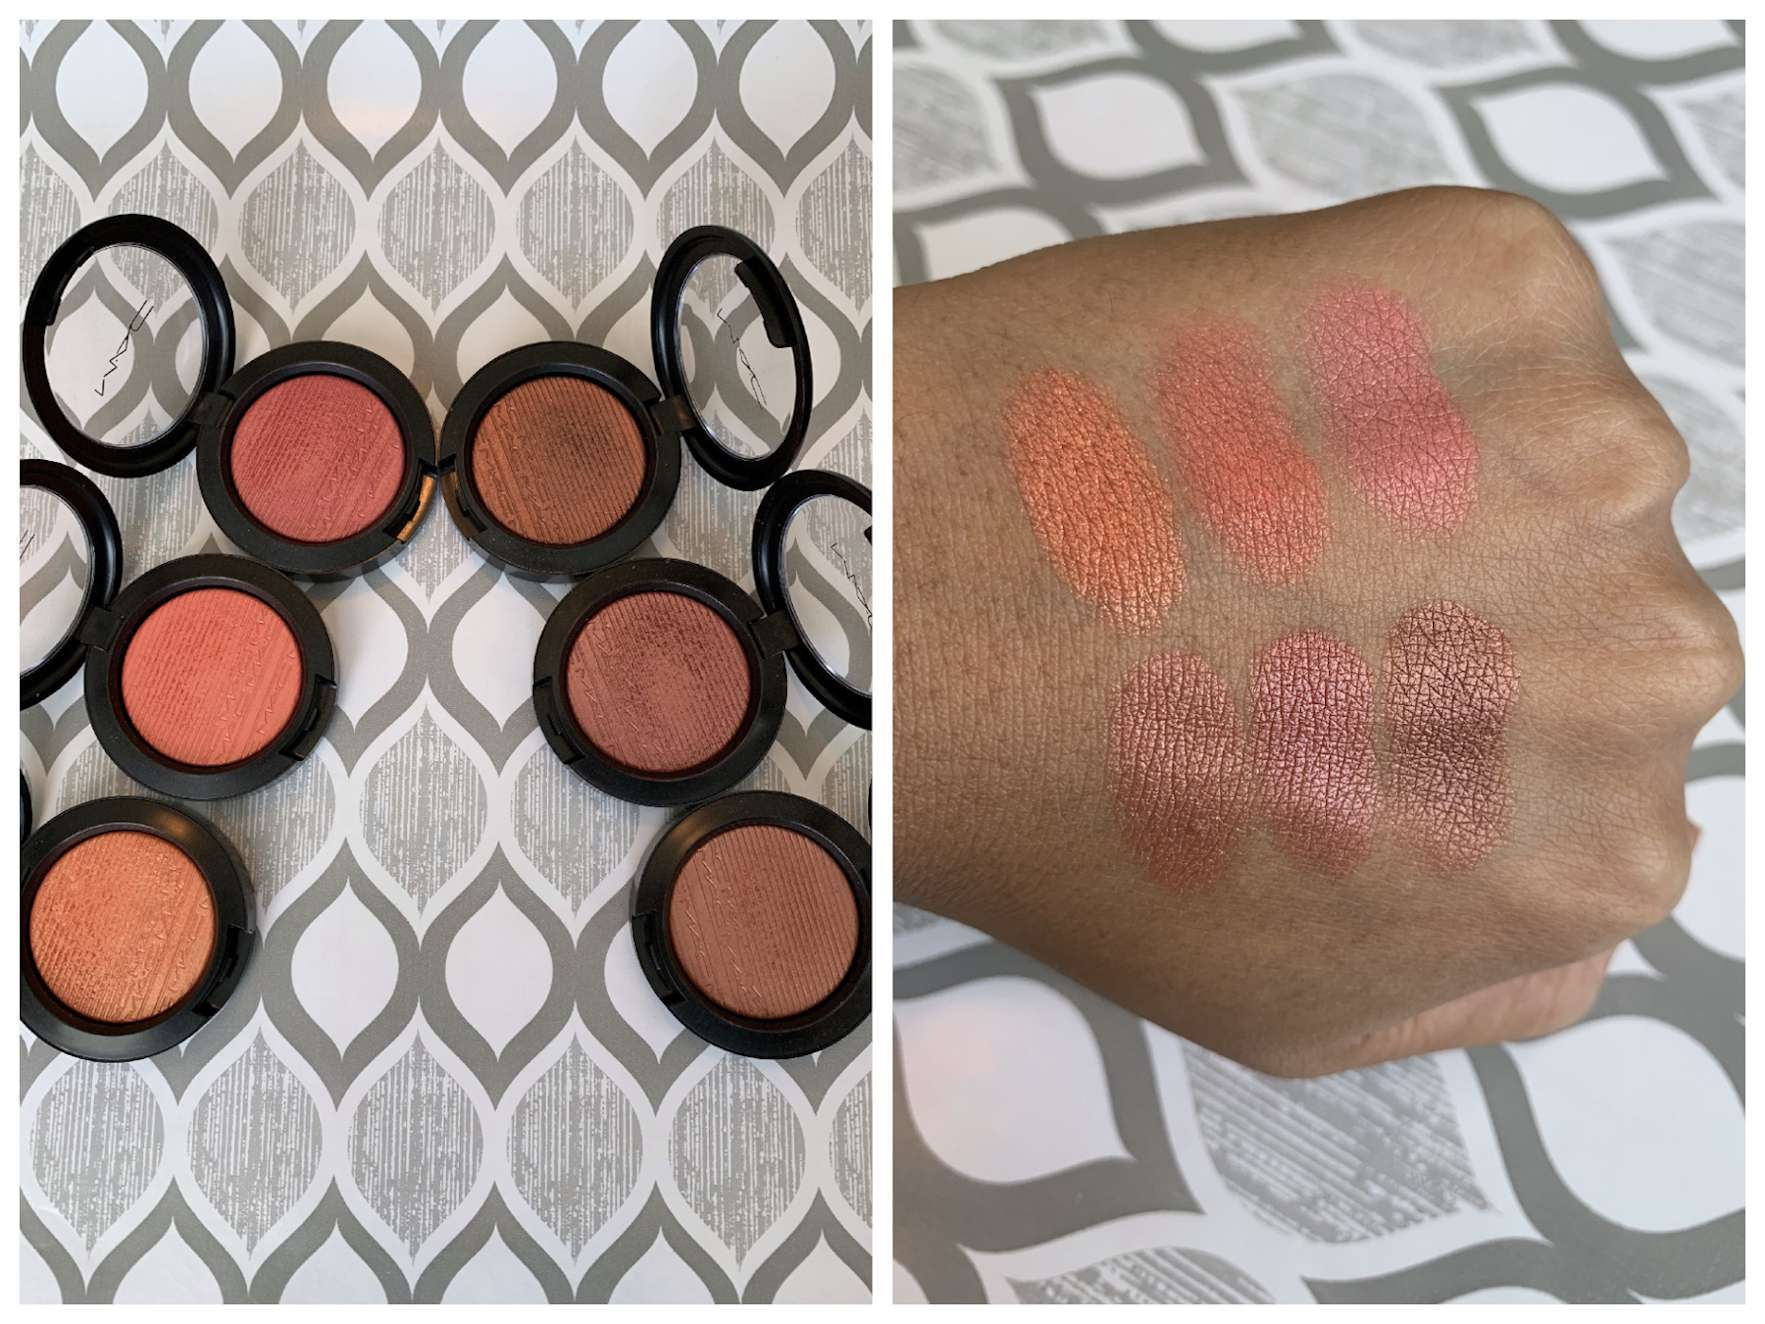 MAC Extra Dimension Blush Swatches (Telling Glow, Cheeky Bits, Sweets For My Sweet, Hushed Tone, Faux Sure!, Hard To Get) medium dark skin